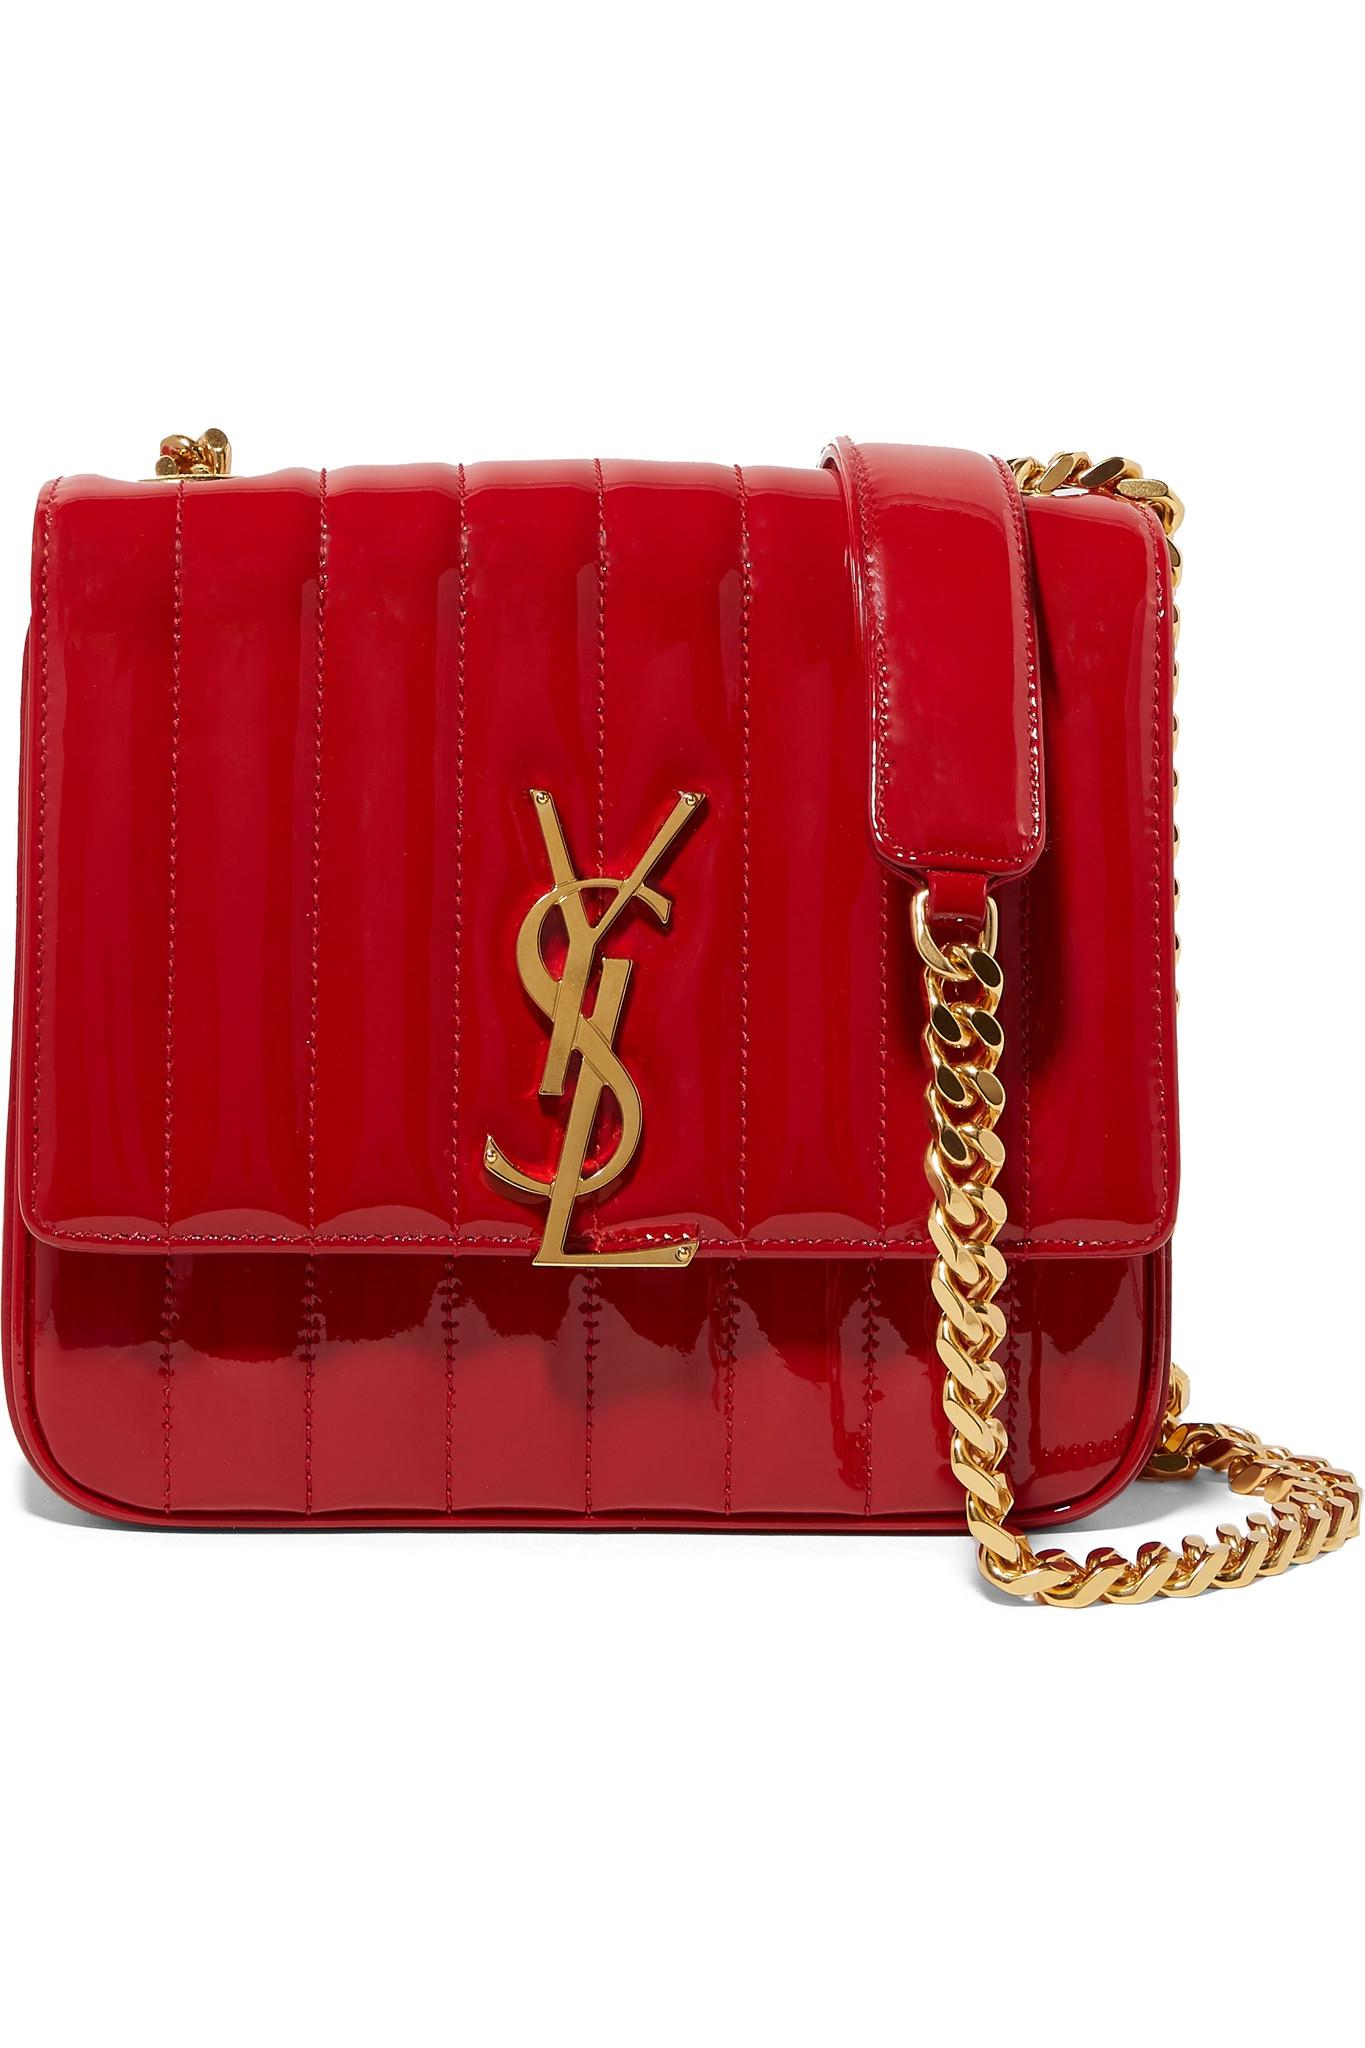 96f071c0ee Saint Laurent Vicky Medium Leather Shoulder Bag in Red - Save 10% - Lyst